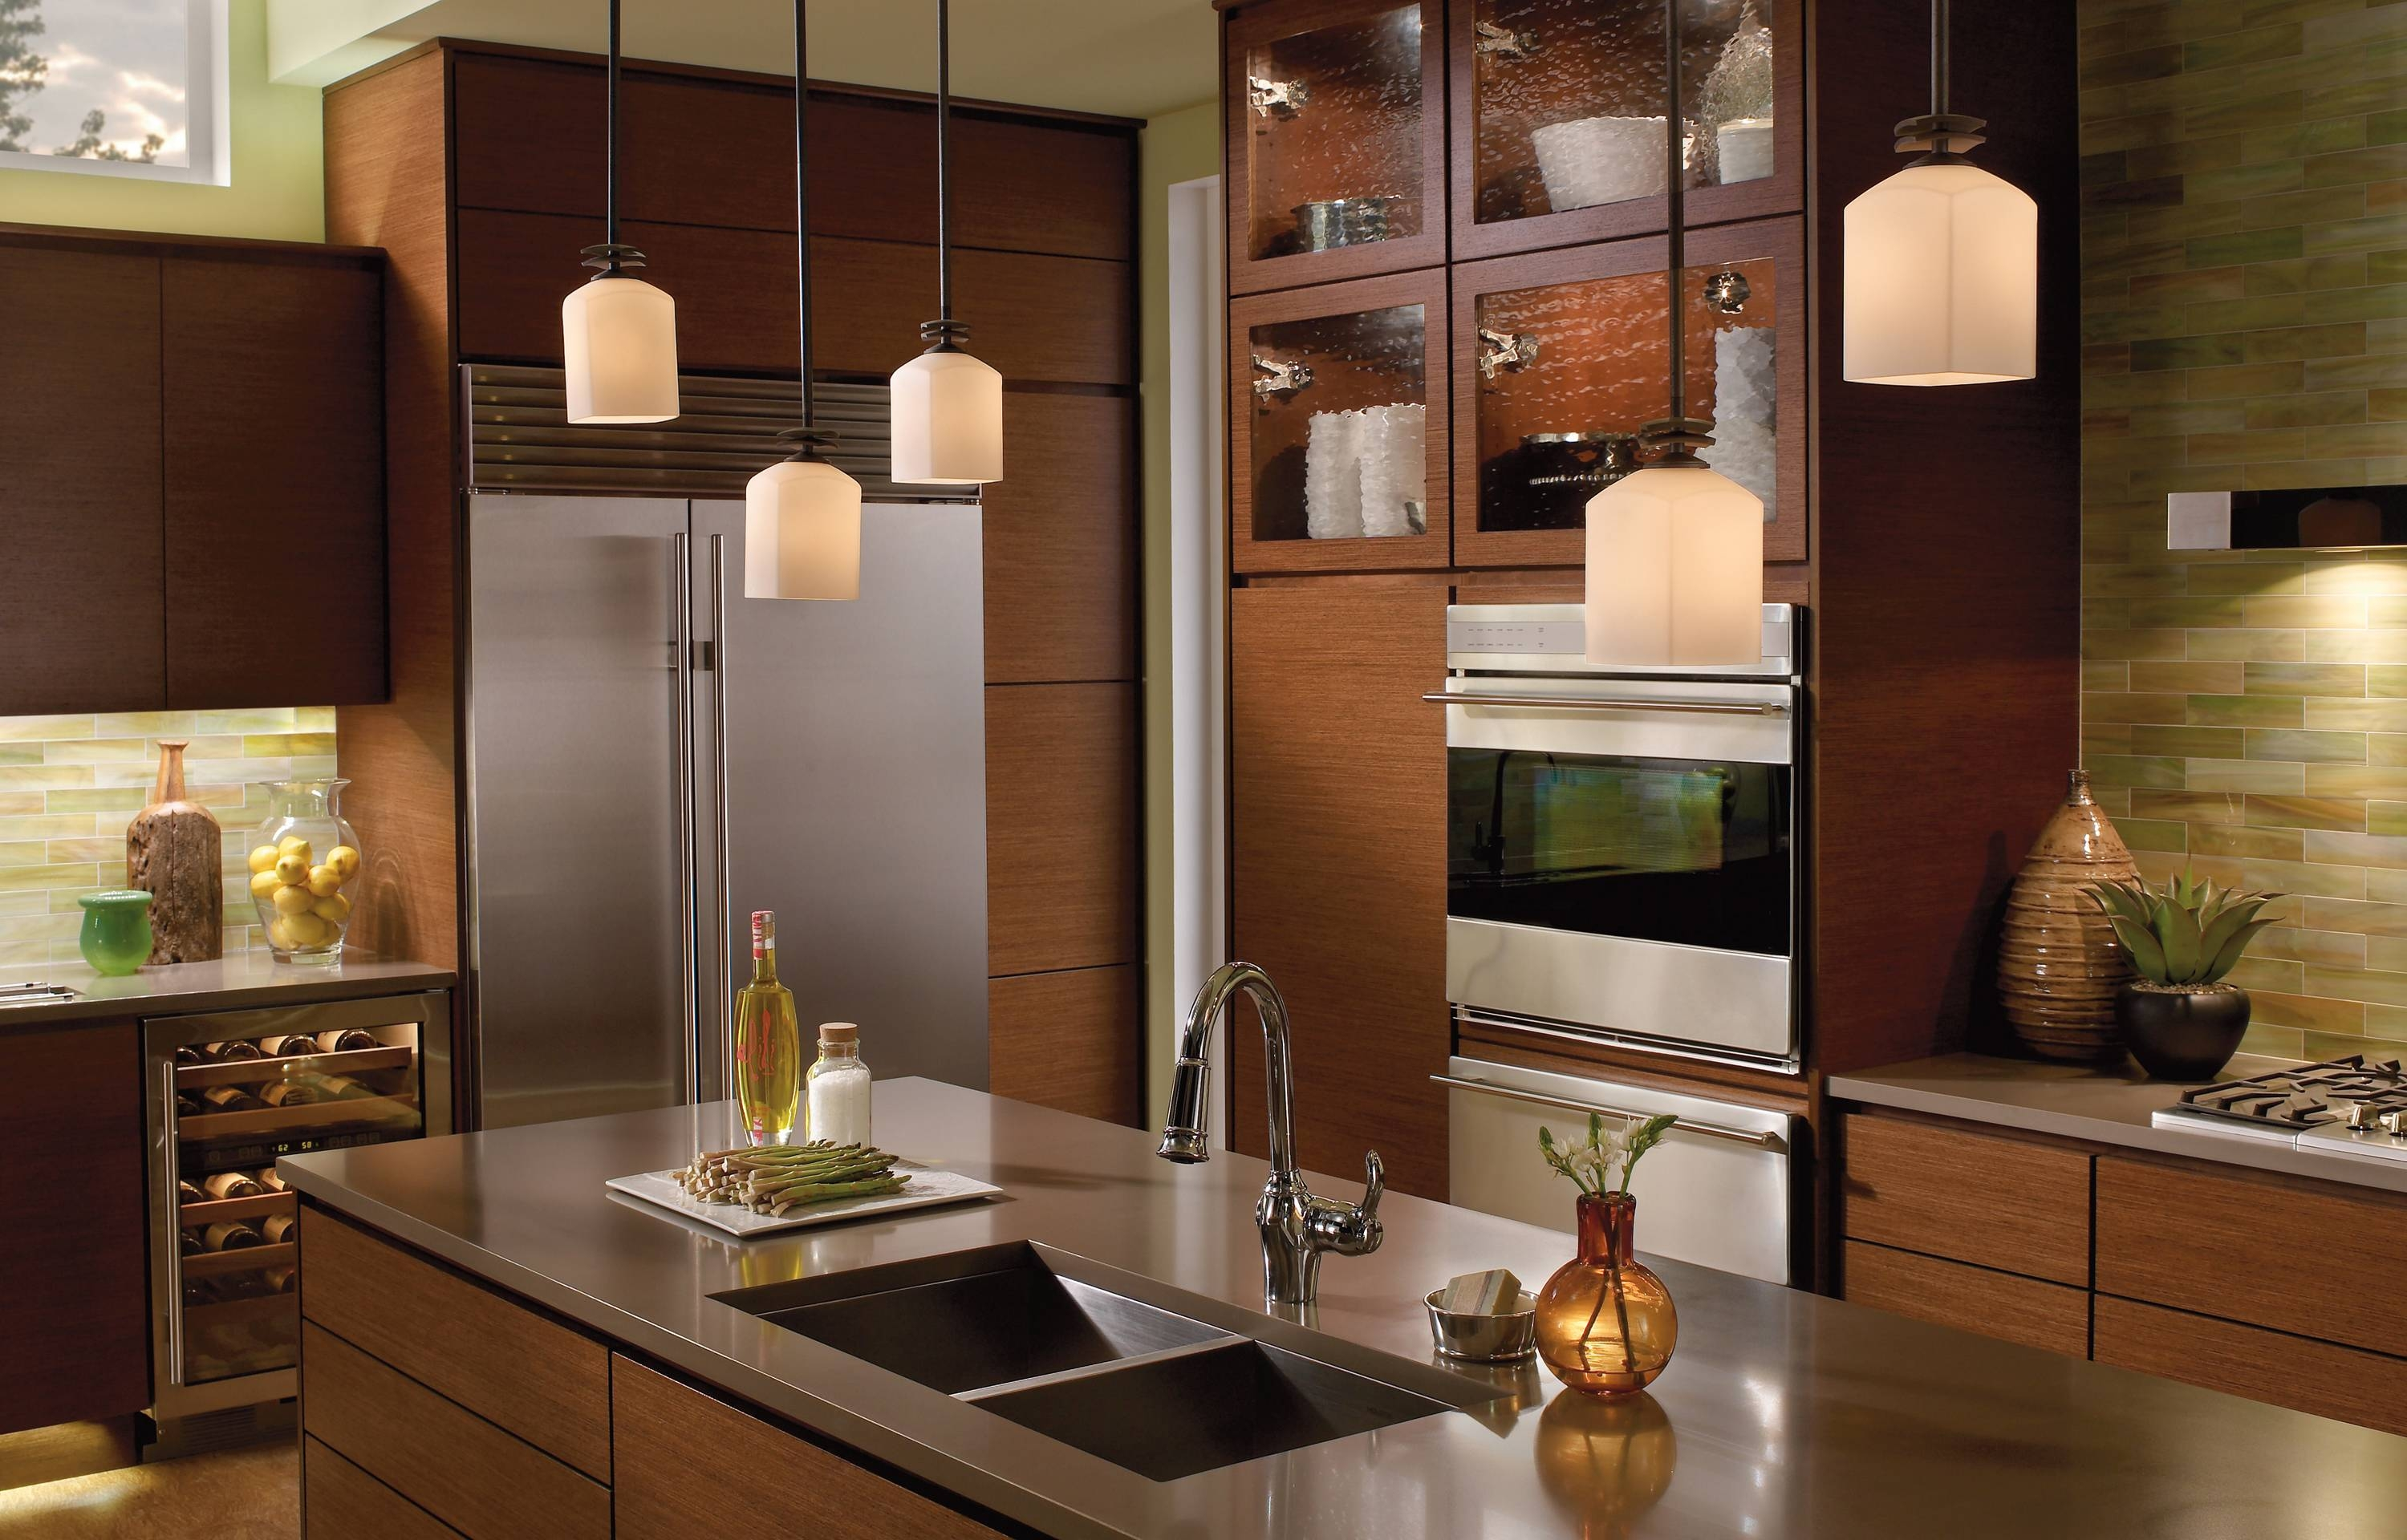 Perfect Mini Pendant Lights For Kitchen Island 46 About Remodel intended for Mini Pendant Lighting for Kitchen Island (Image 14 of 15)